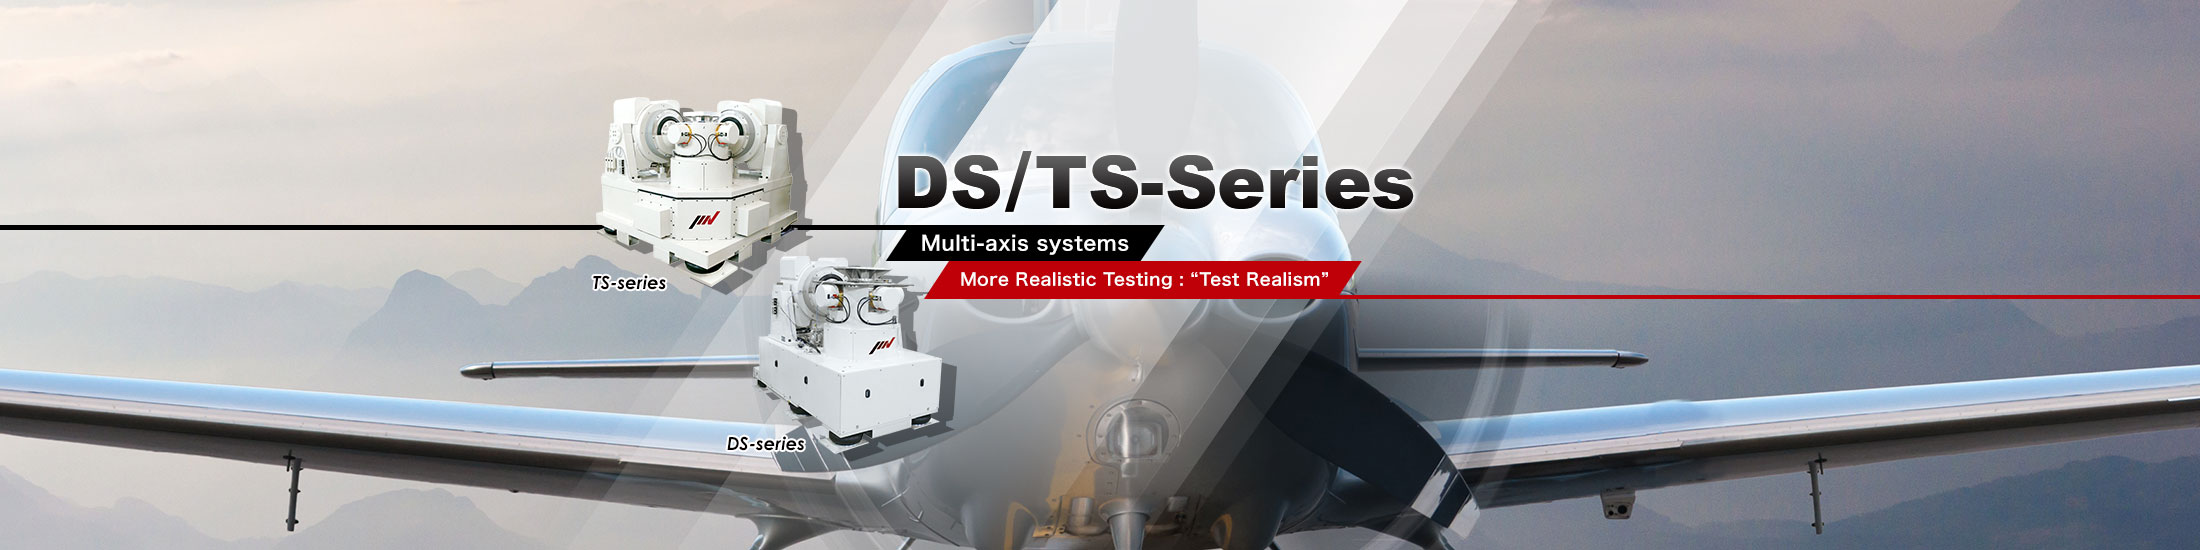 "DS/TS-Series Multi-axis systems More Realistic Testing : ""Test Realism"""